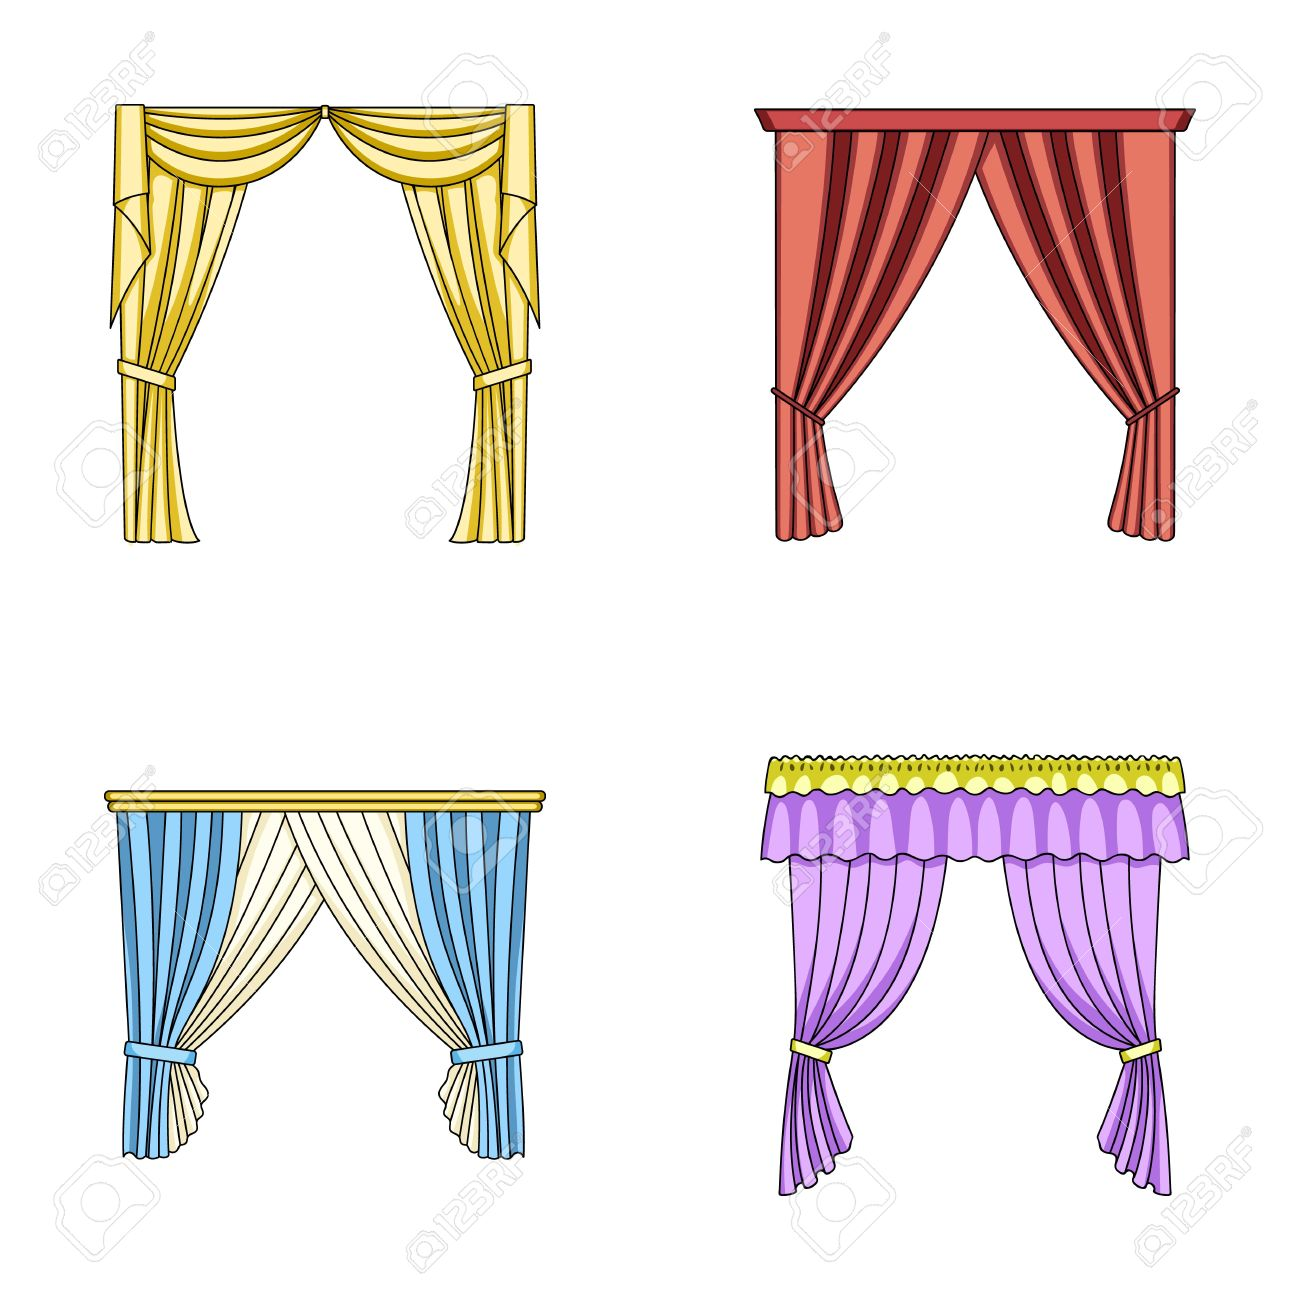 Different Types Of Window Curtains.Curtains Set Collection Icons ... for Window With Curtains Illustration  545xkb